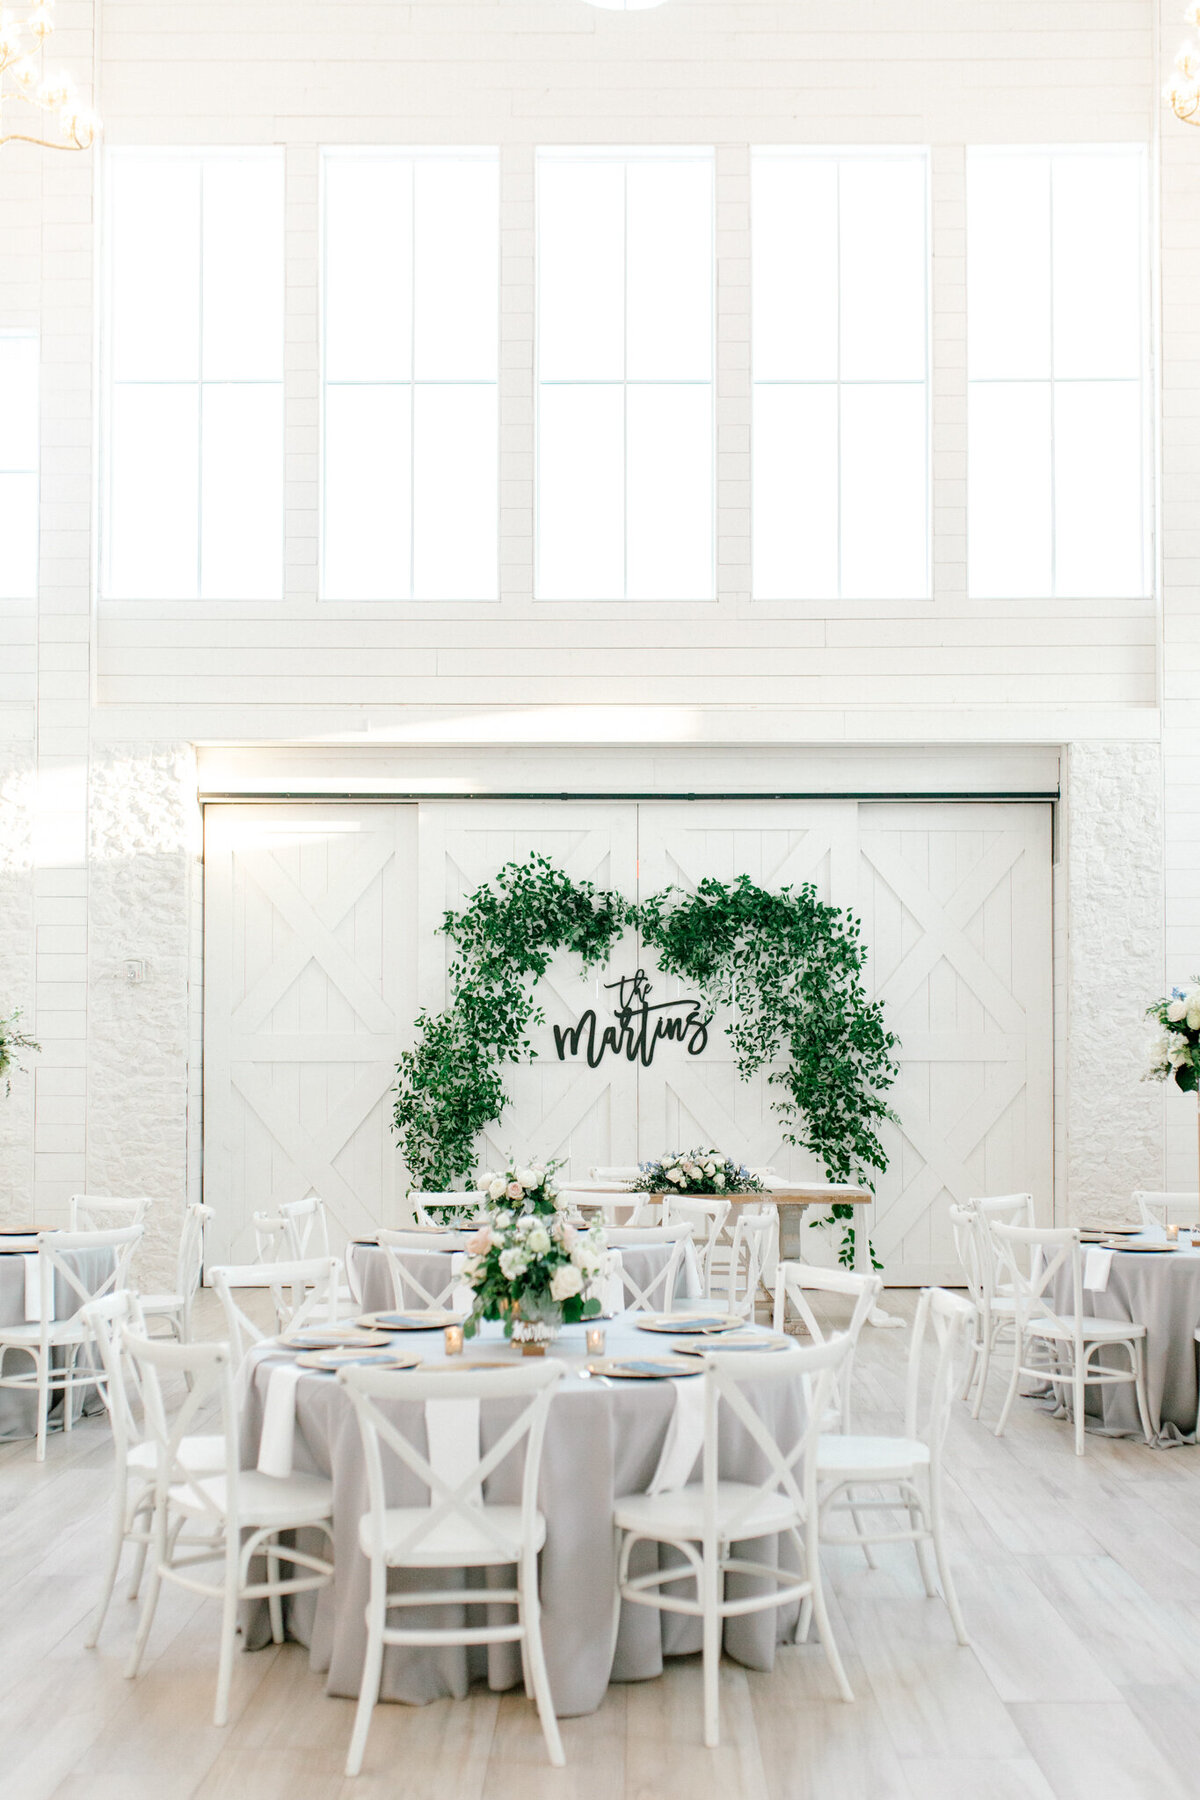 Anna & Billy's Wedding at The Nest at Ruth Farms | Dallas Wedding Photographer | Sami Kathryn Photography-198